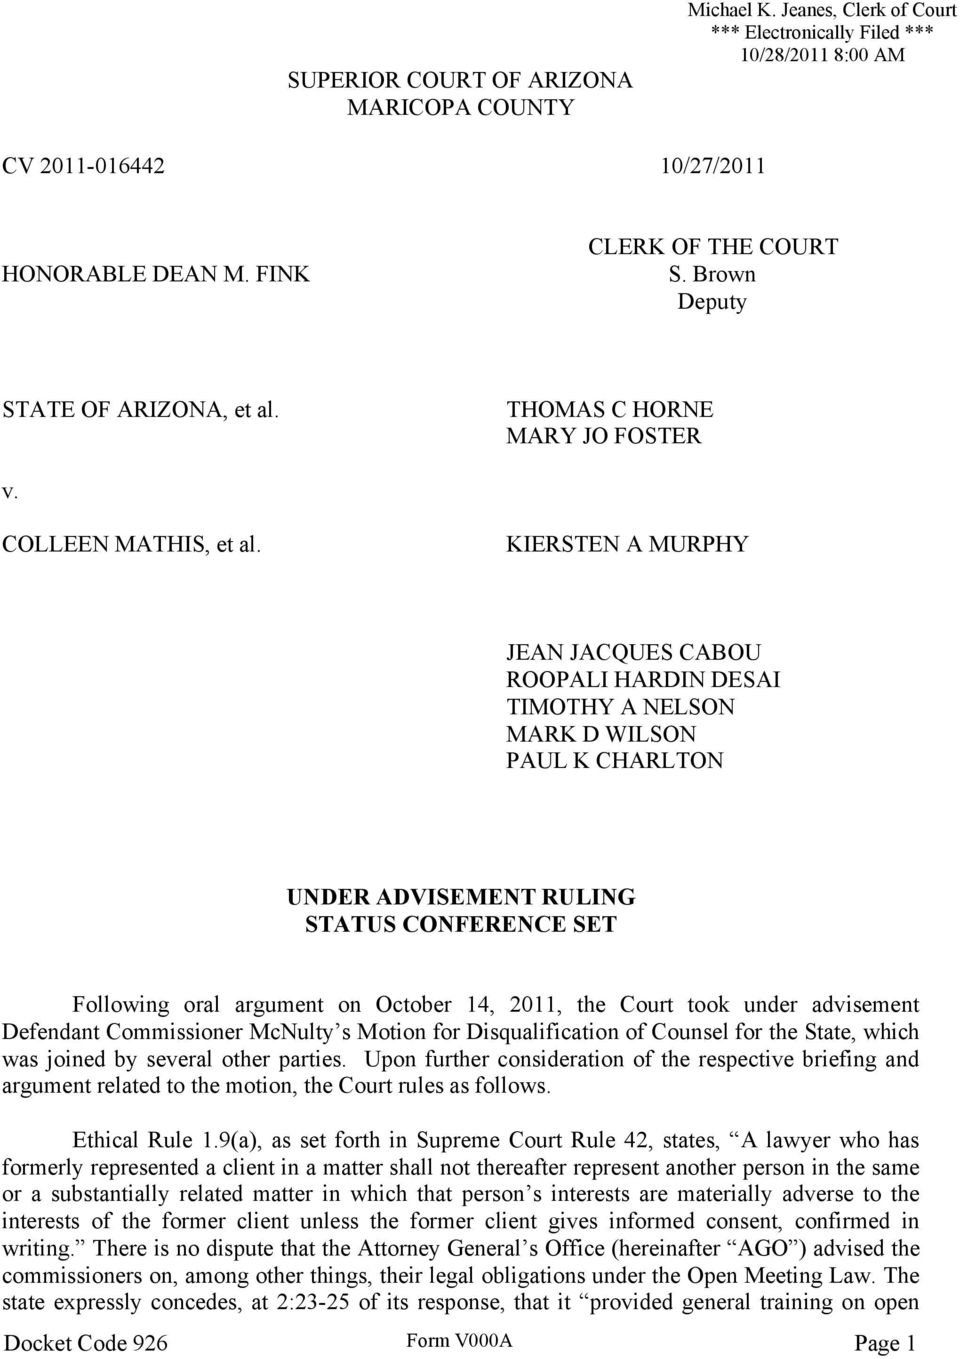 KIERSTEN A MURPHY JEAN JACQUES CABOU ROOPALI HARDIN DESAI TIMOTHY A NELSON MARK D WILSON PAUL K CHARLTON UNDER ADVISEMENT RULING STATUS CONFERENCE SET Following oral argument on October 14, 2011, the